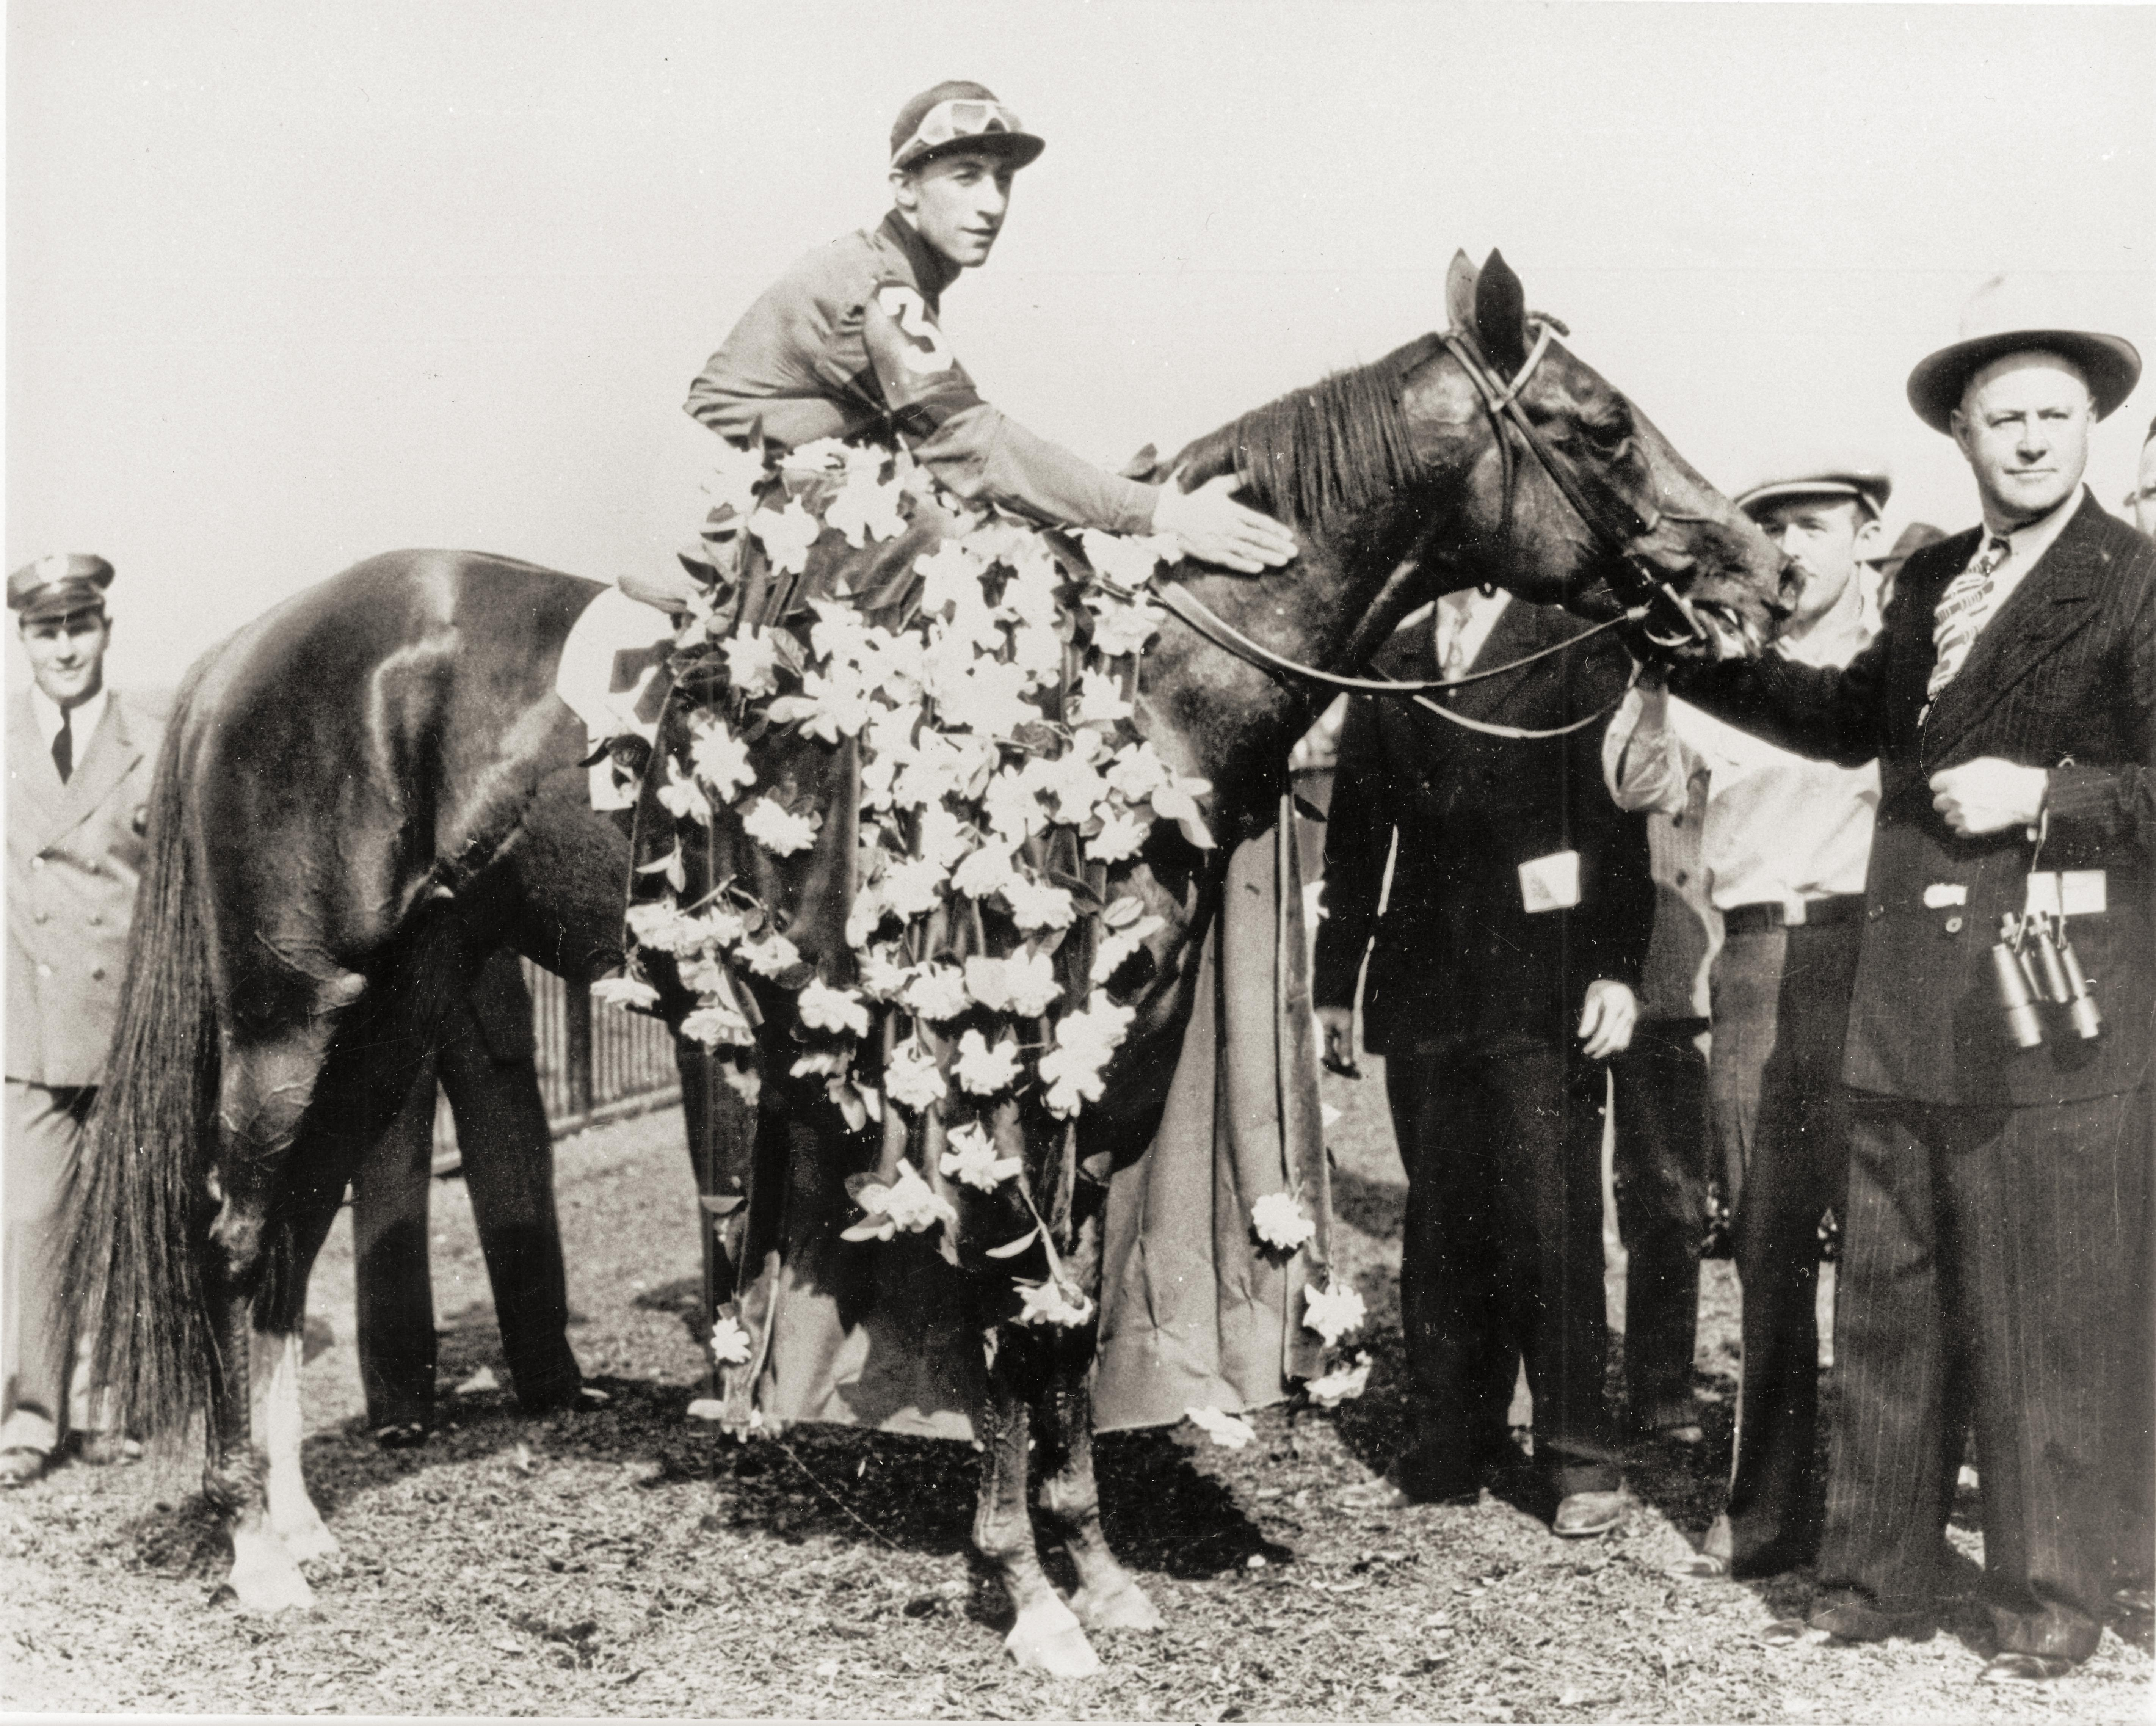 Arcaro with Whirlaway in the Belmont Stakes winner's circle.